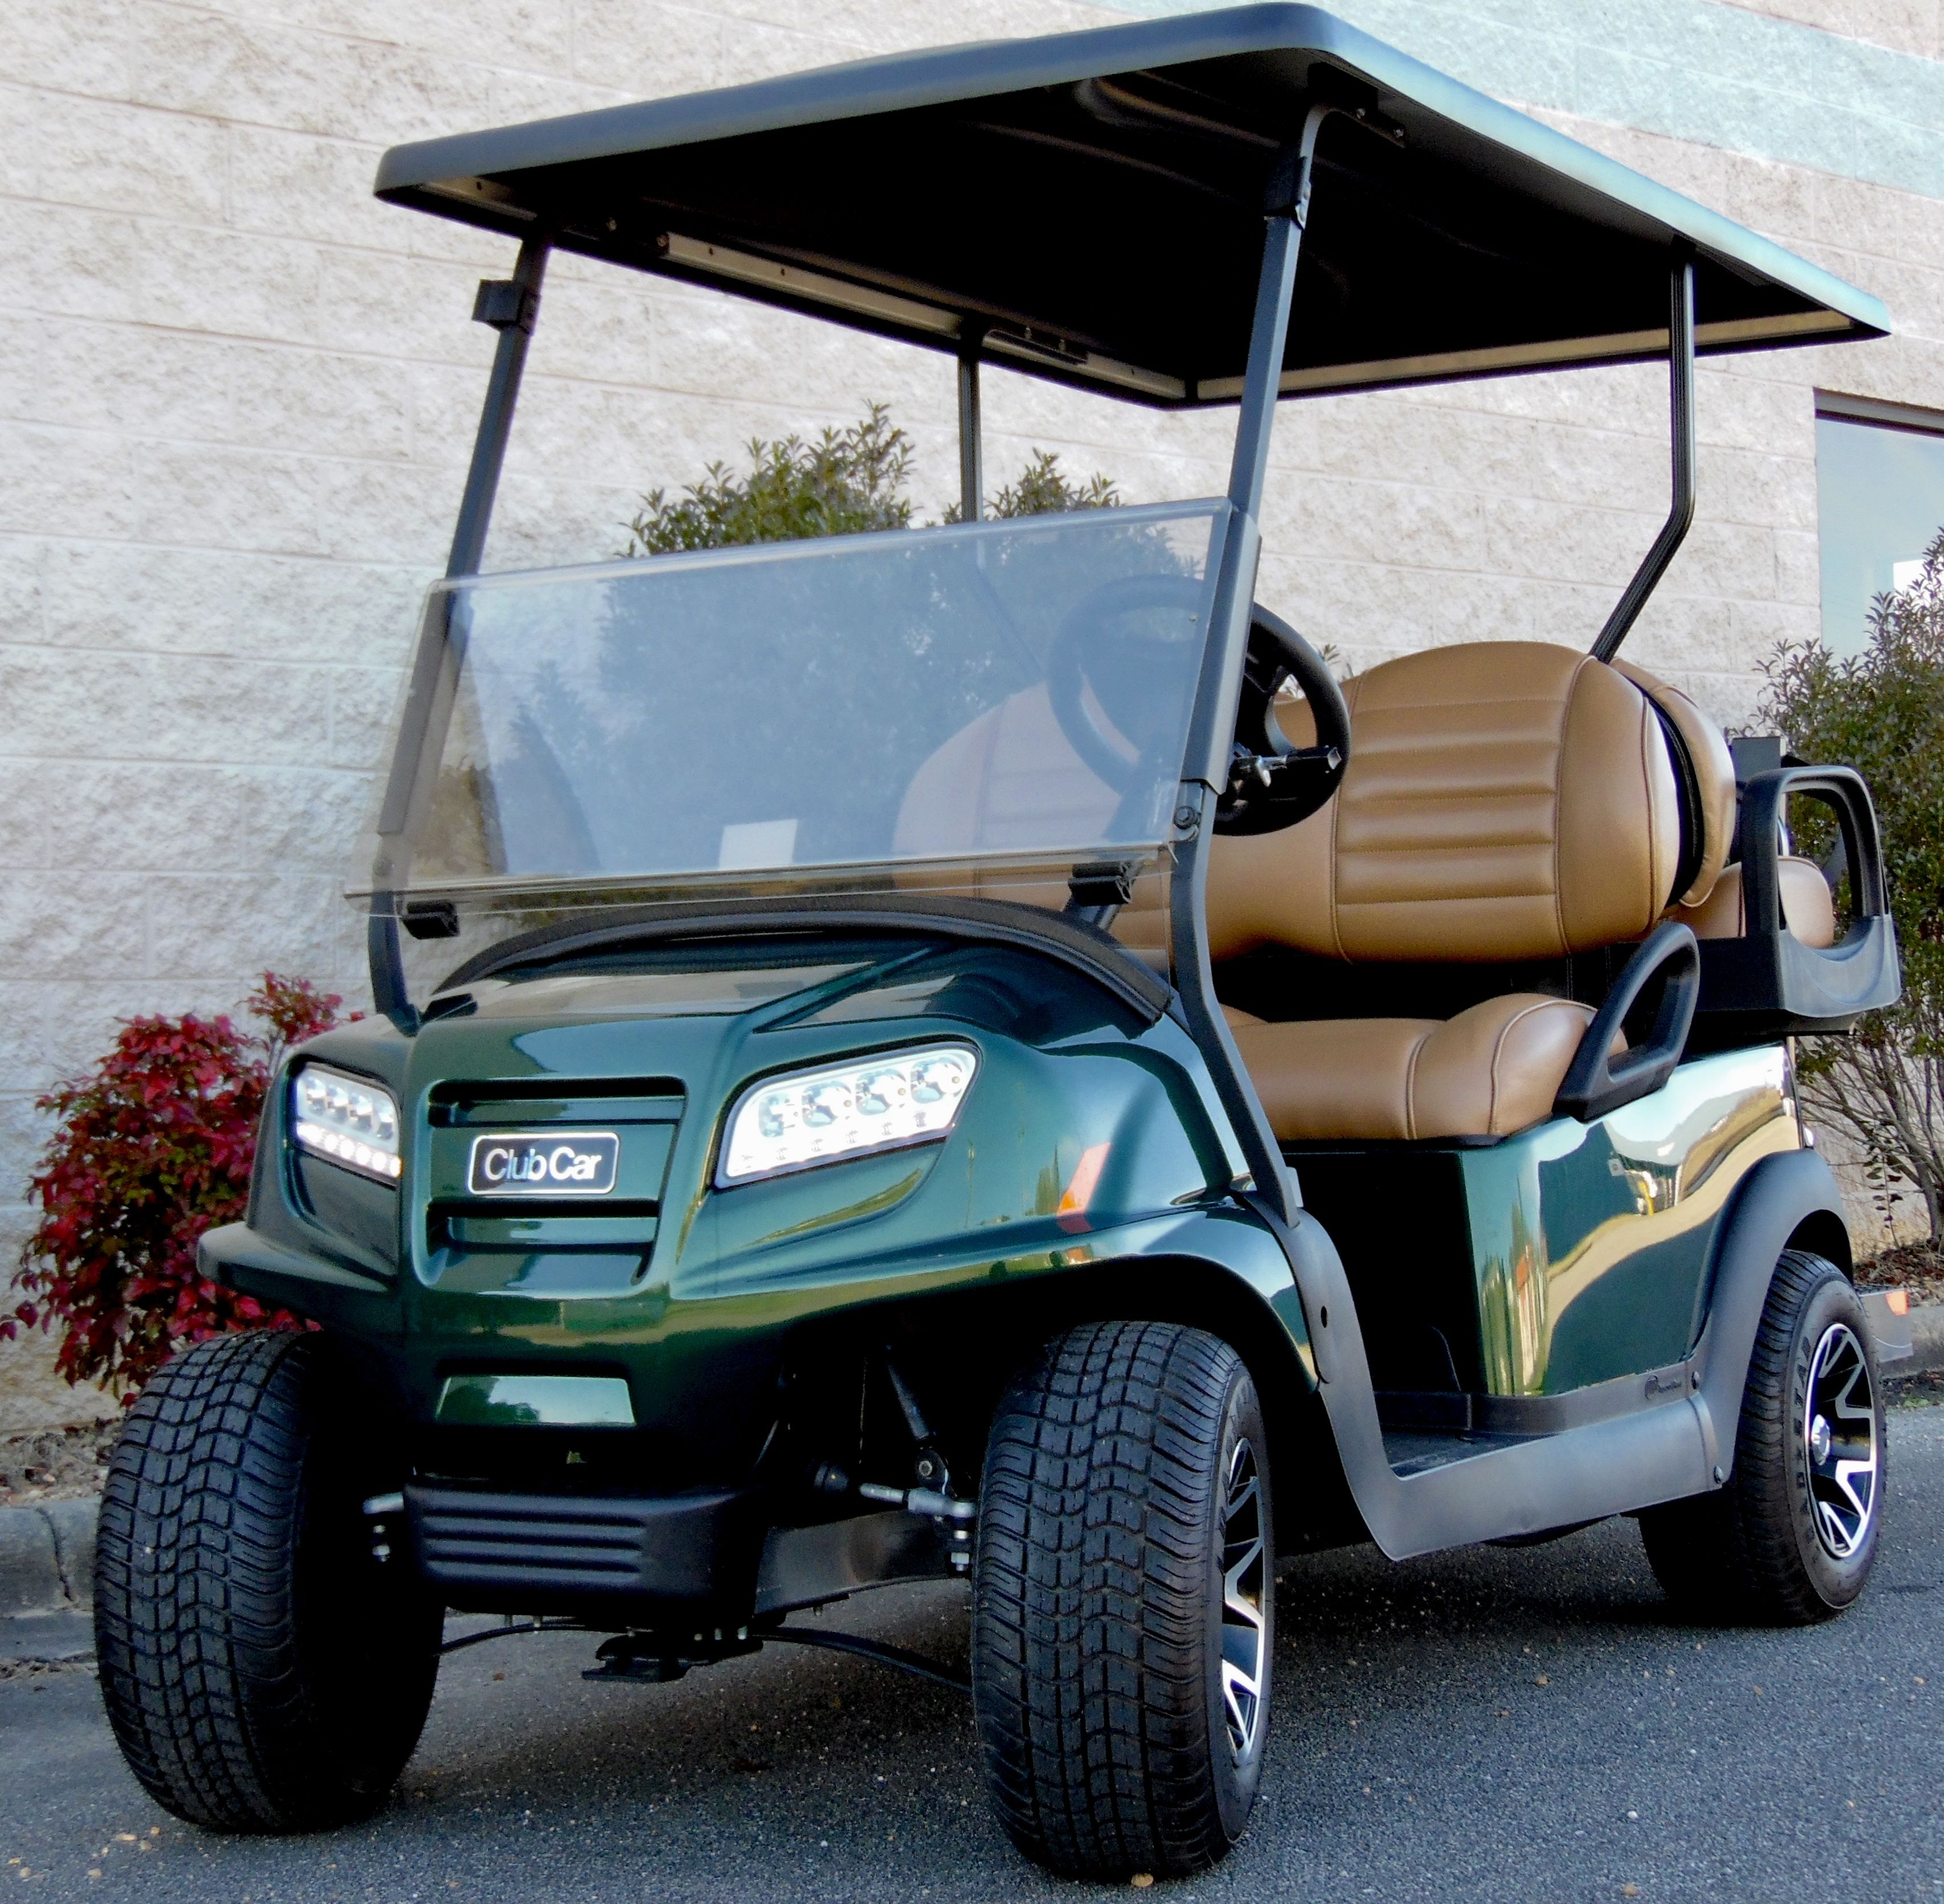 golf cart outlet of mount airy golfcartoutletofmountairy on pinterest golf cart outlet of mount airy